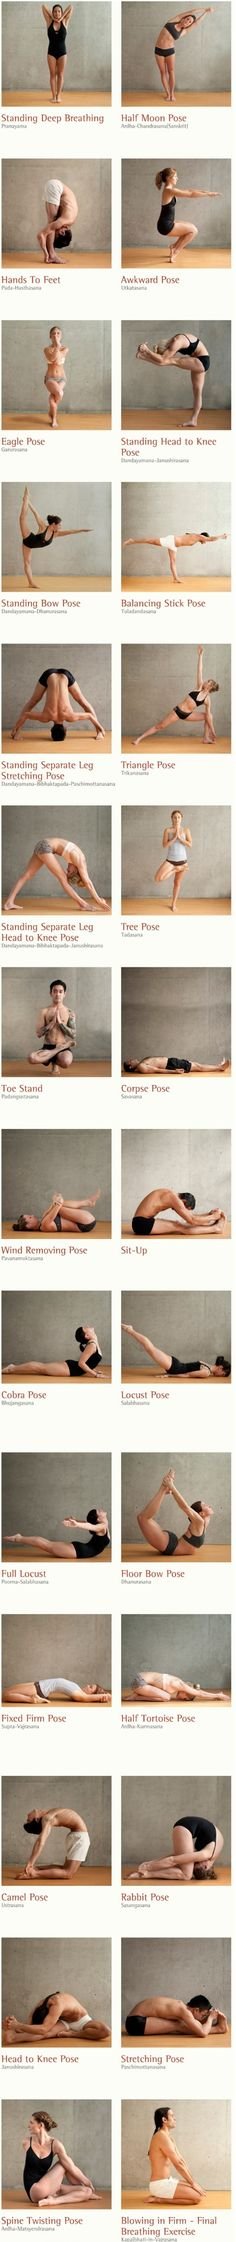 26 Healthy Yoga Postures